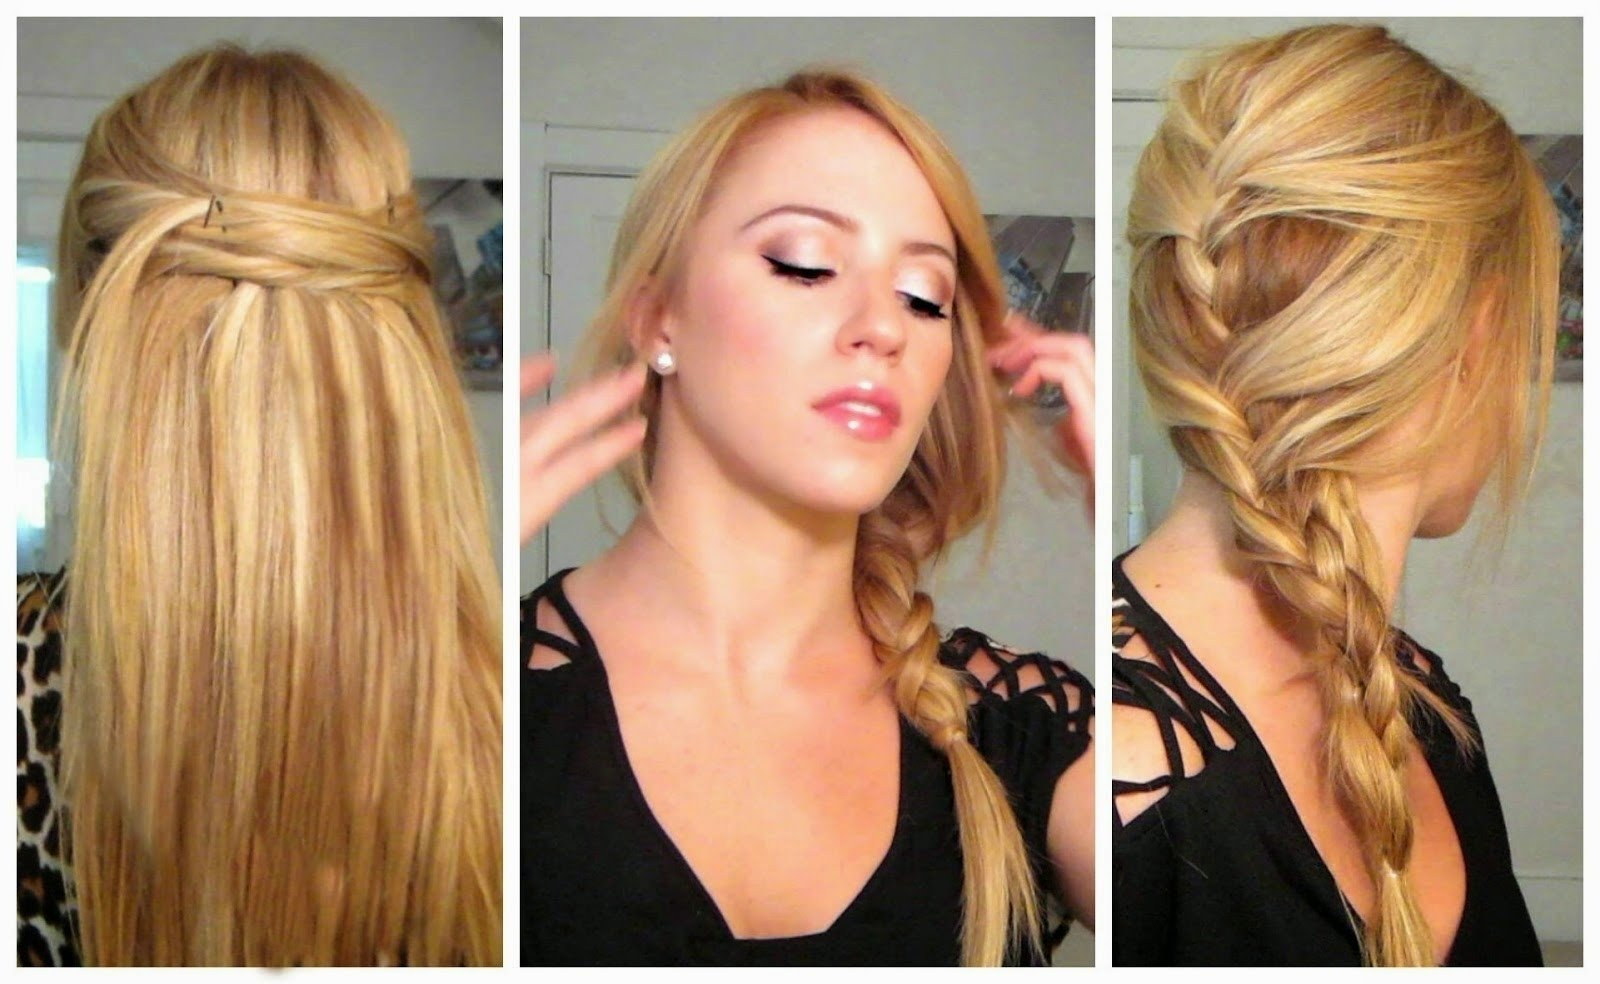 10 Stunning Easy Hair Ideas For Long Hair beautiful quick easy long hairstyles razanflight 2021